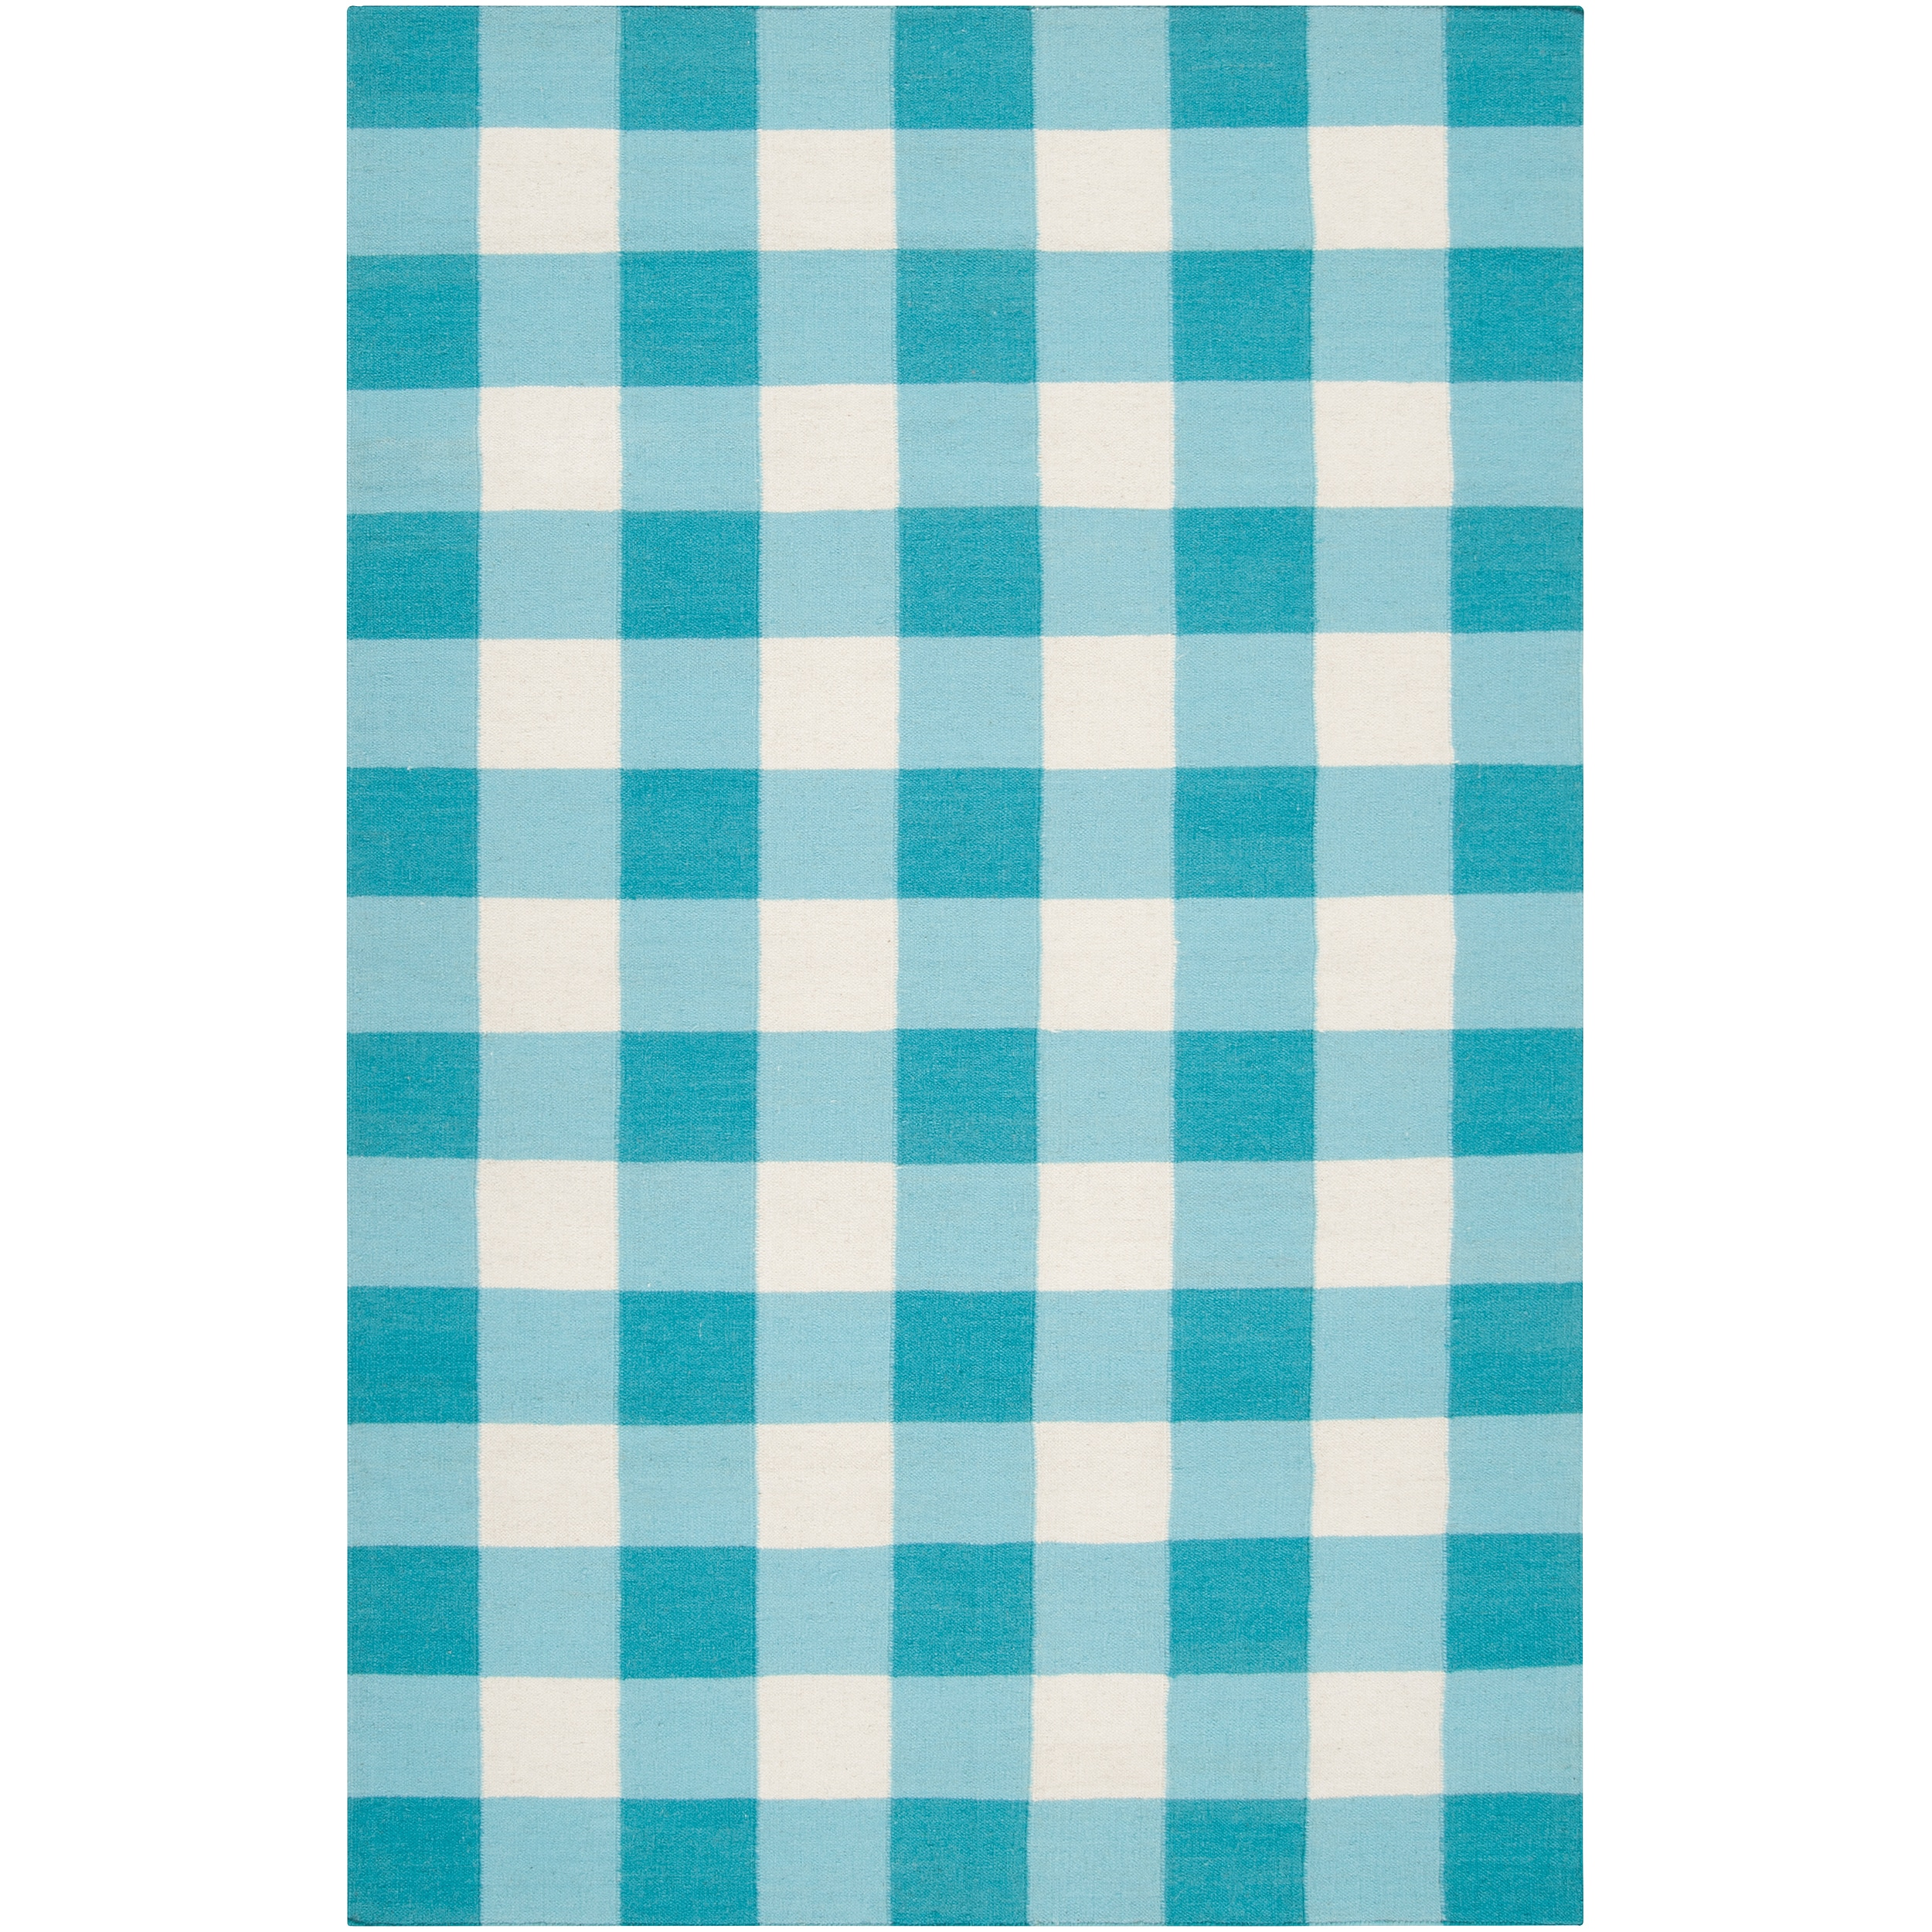 Country Living Hand-woven Blue High Kite Wool Rug (3'6 x 5'6)